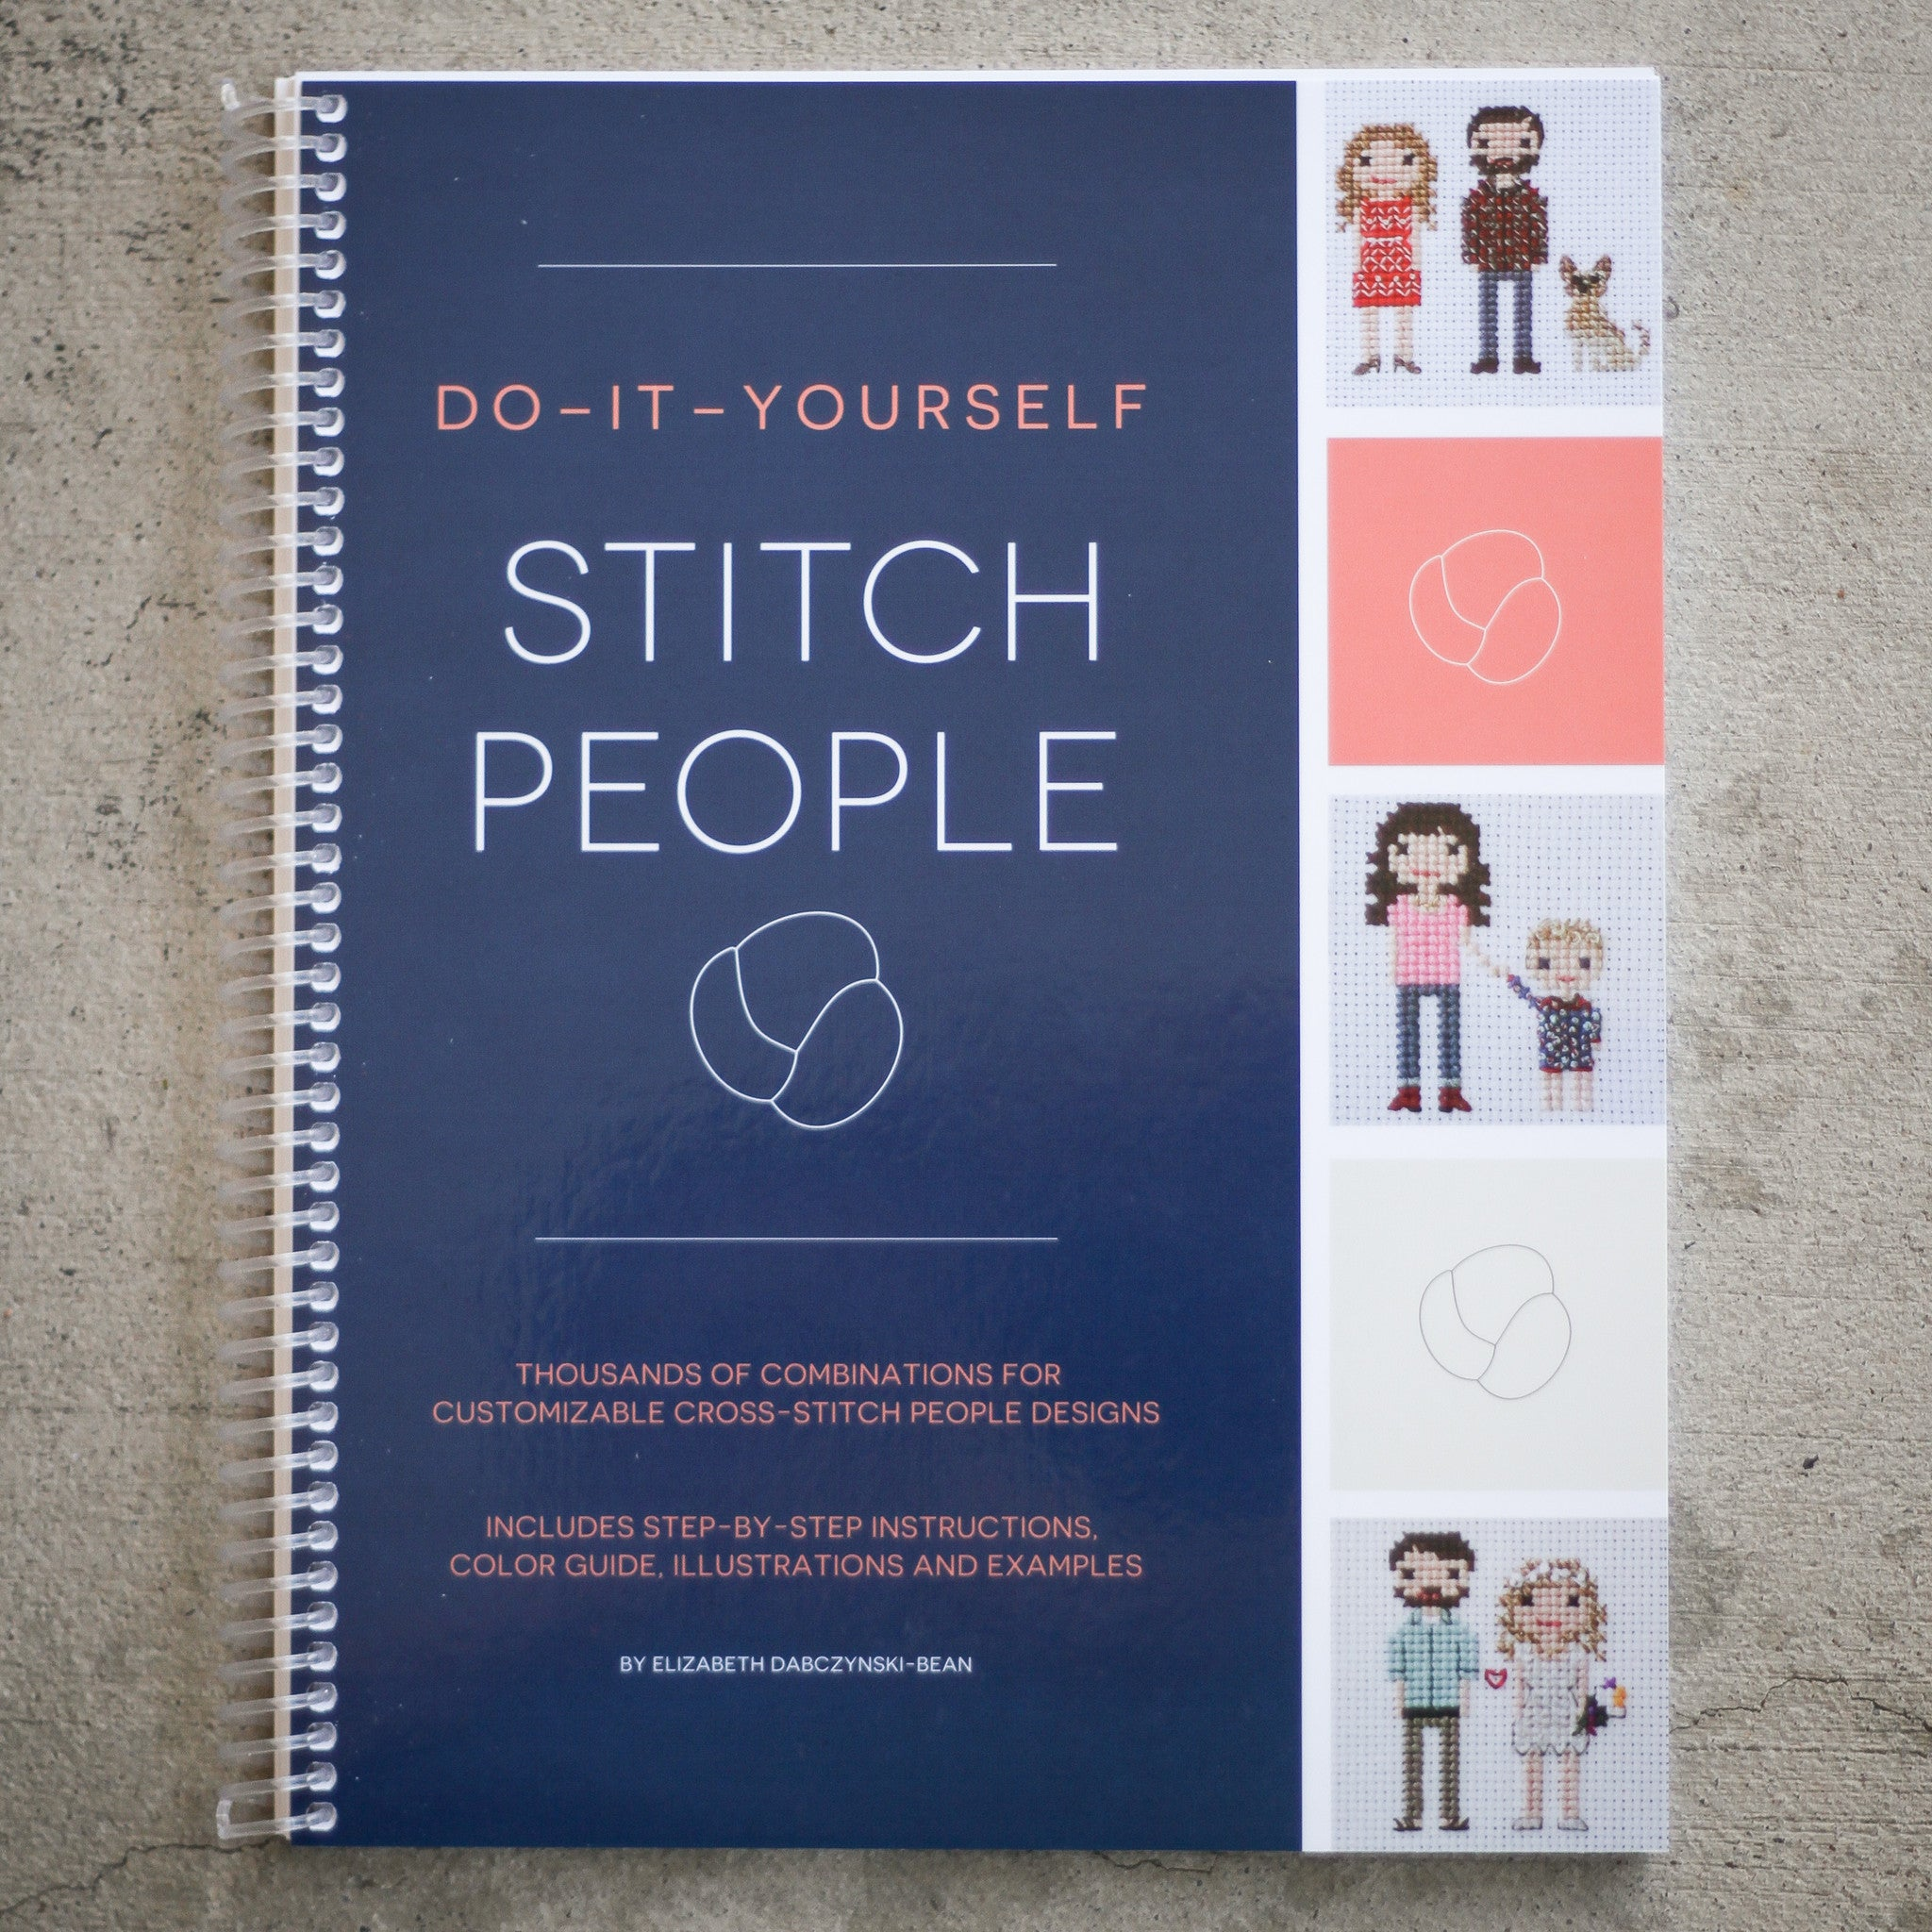 Diy stitch people book cross stitch portrait patterns do it yourself stitch people book solutioingenieria Gallery